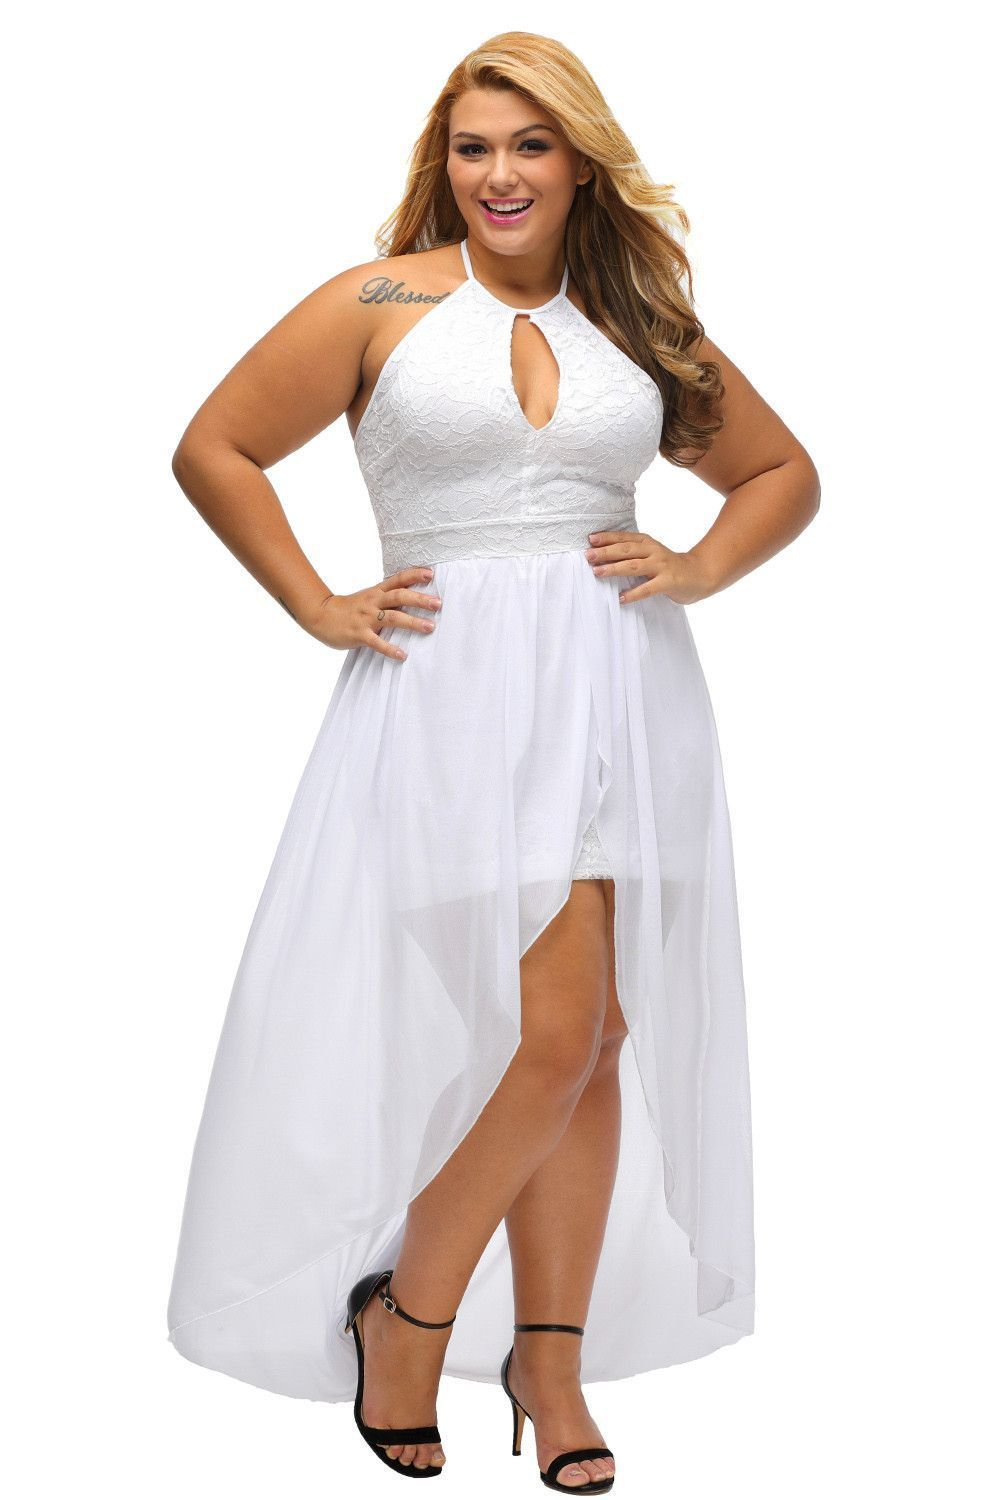 Stylish Lace Special Occasion Plus Size Dress Stylish Curvy And